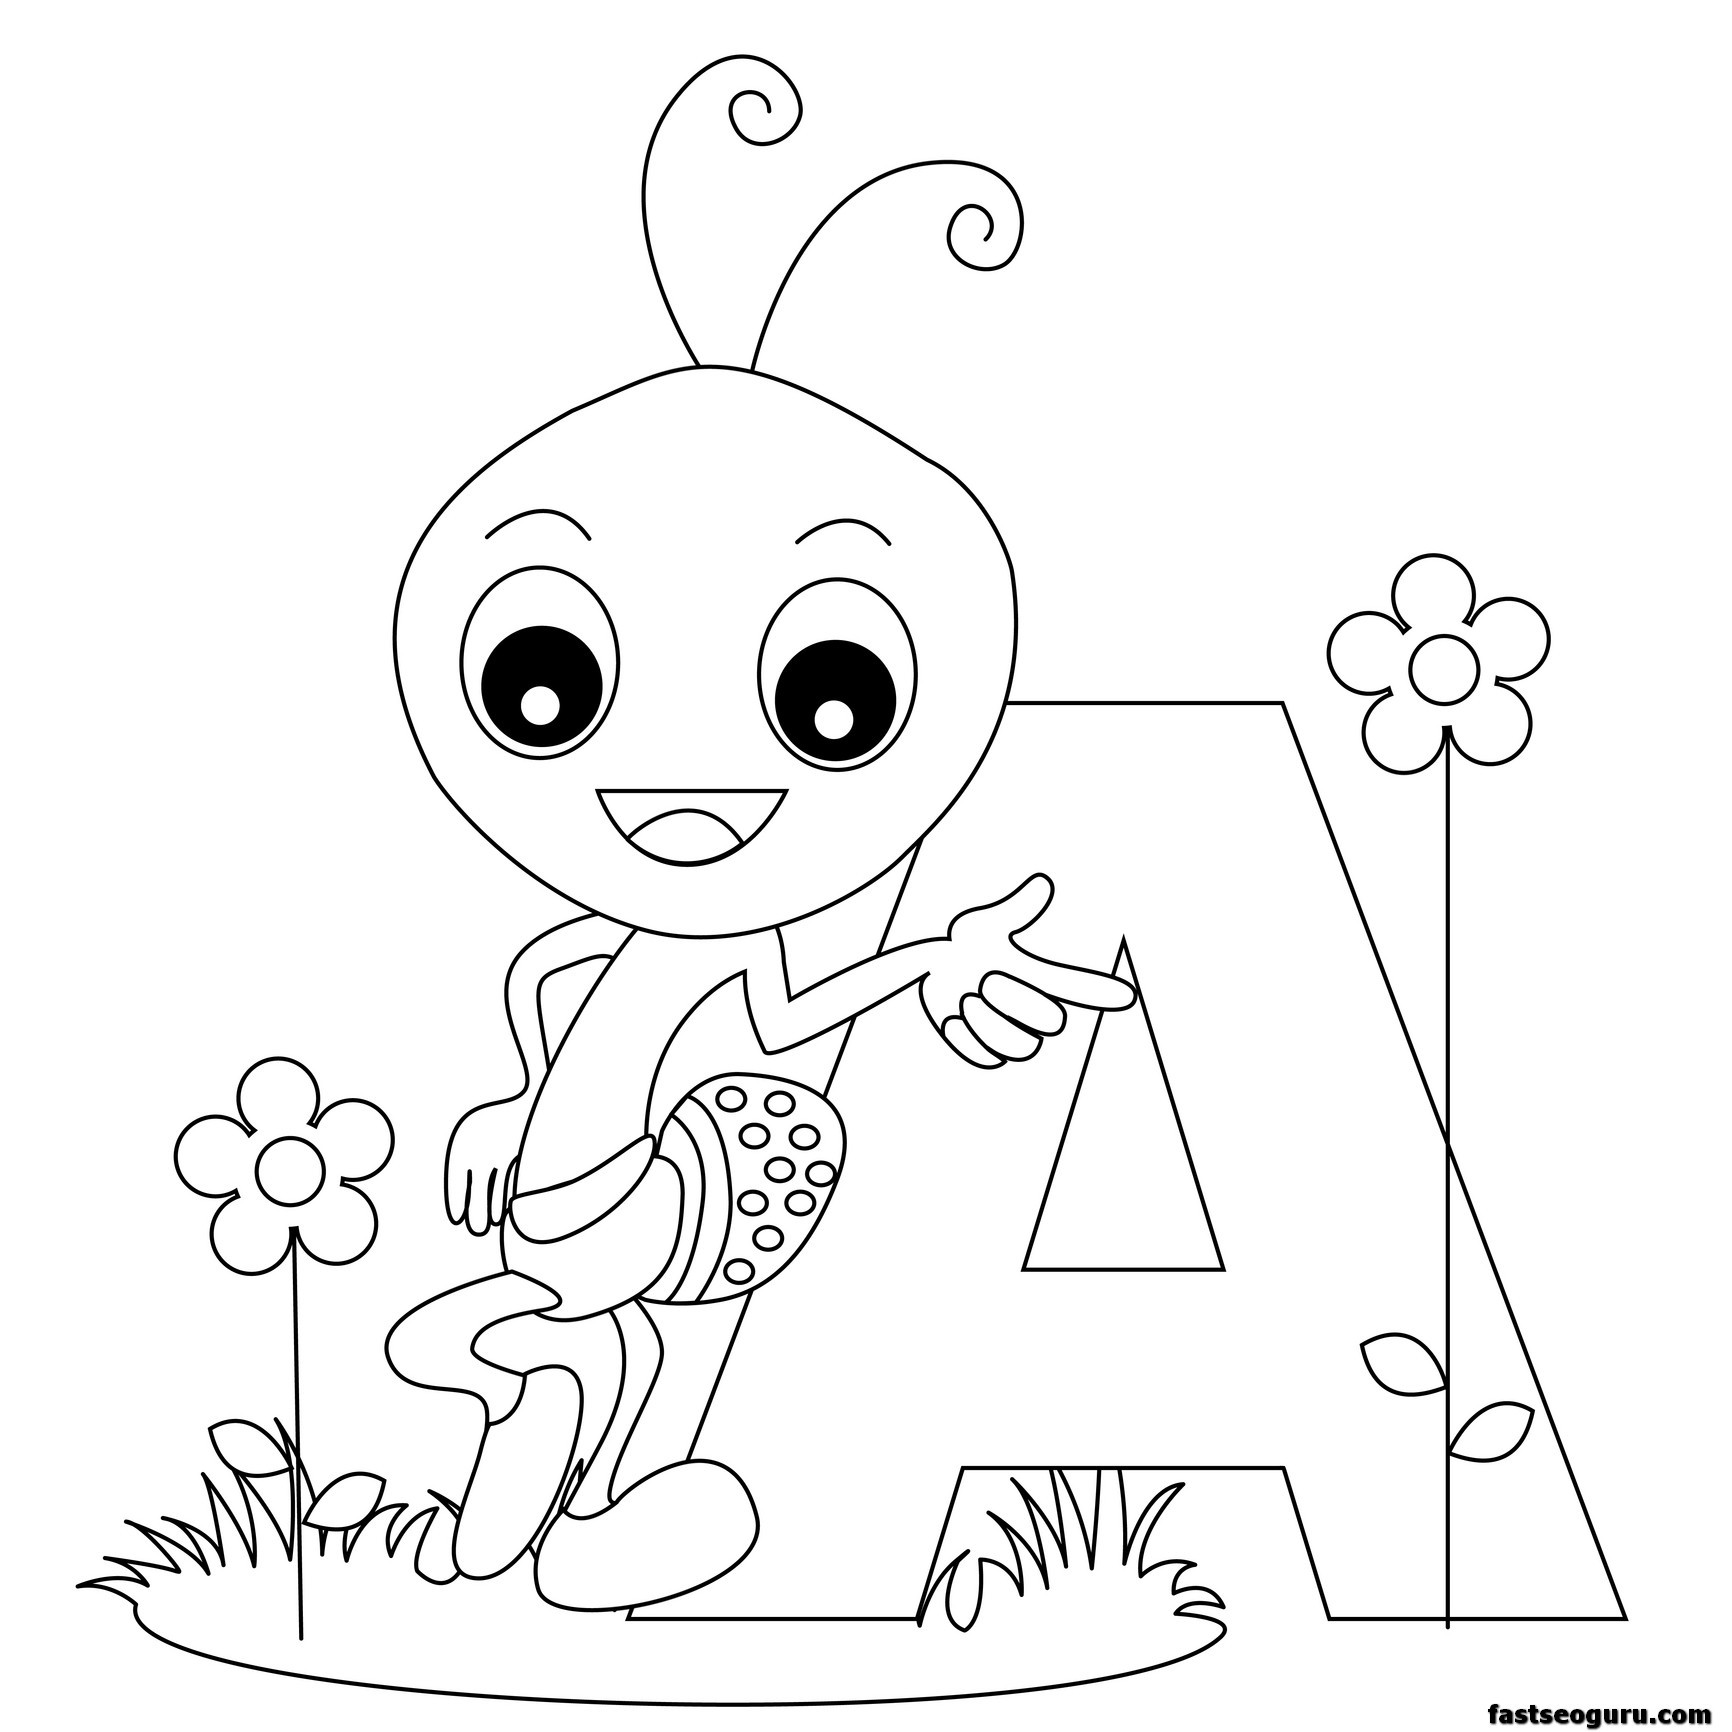 Printable Animal Alphabet Worksheets Letter A For Ant